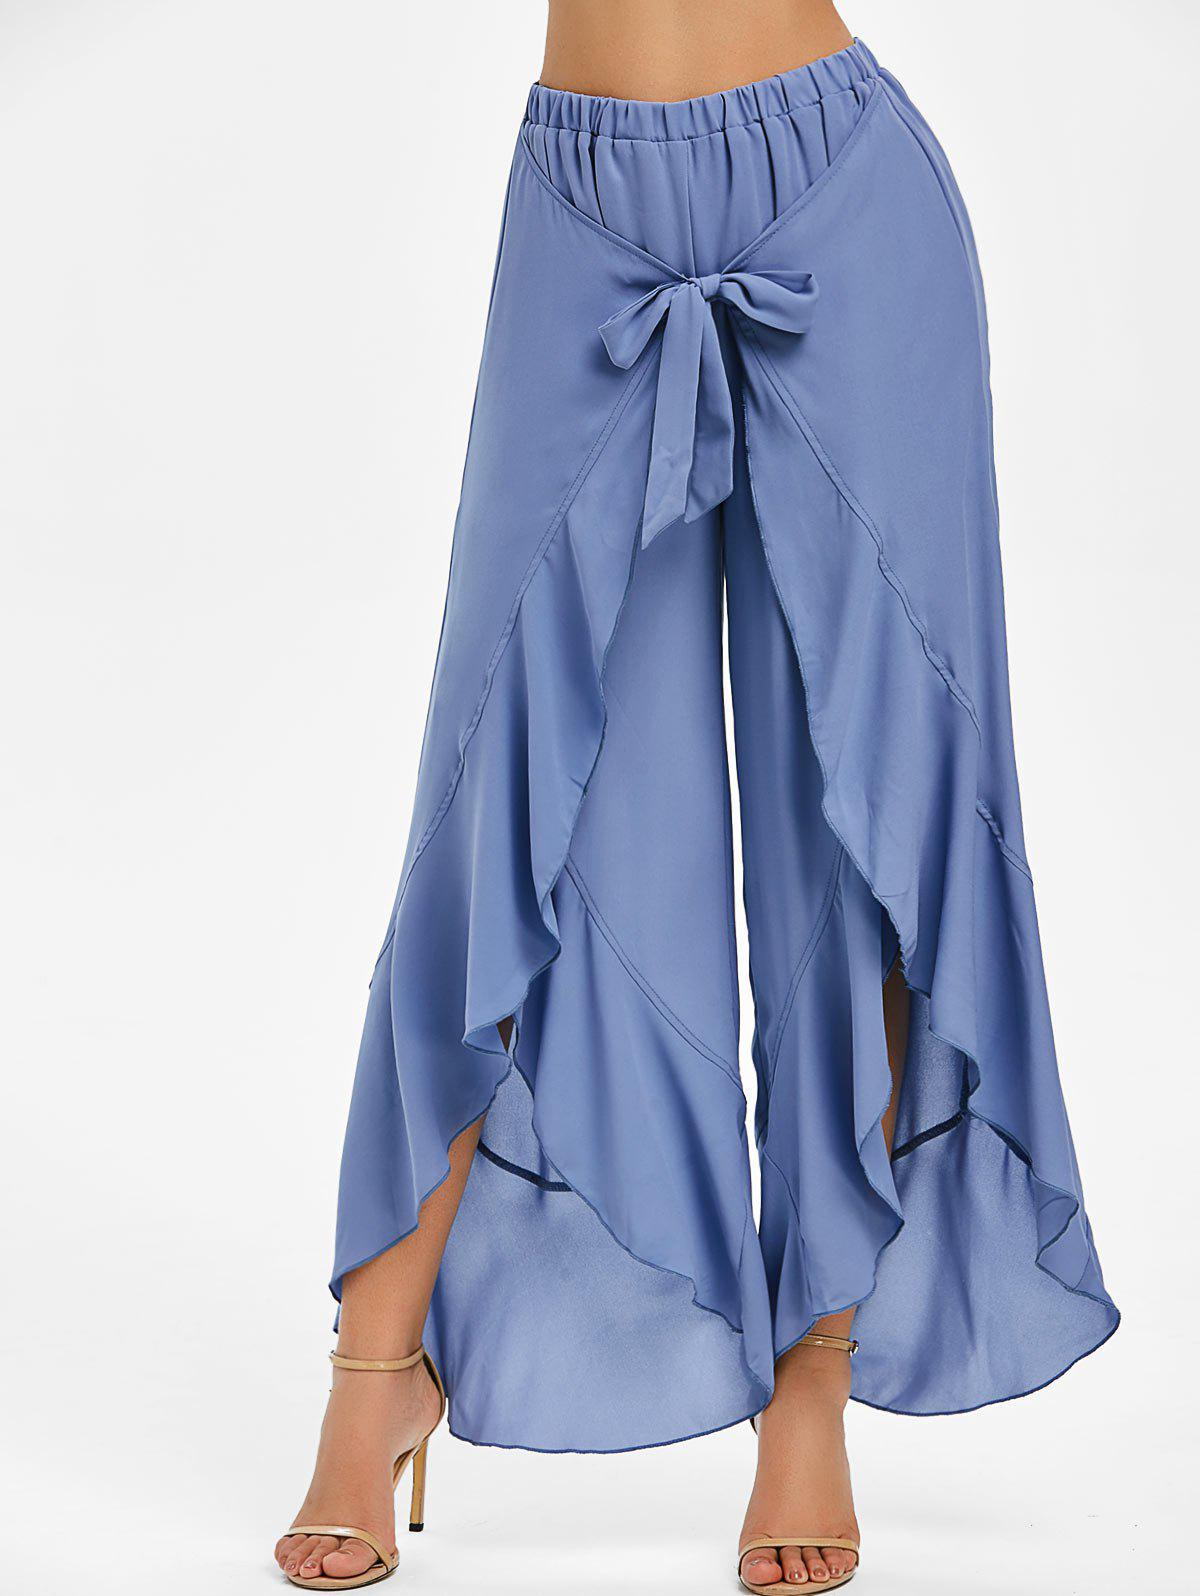 Buy Ruffle High Waist Slit Wrap Pants